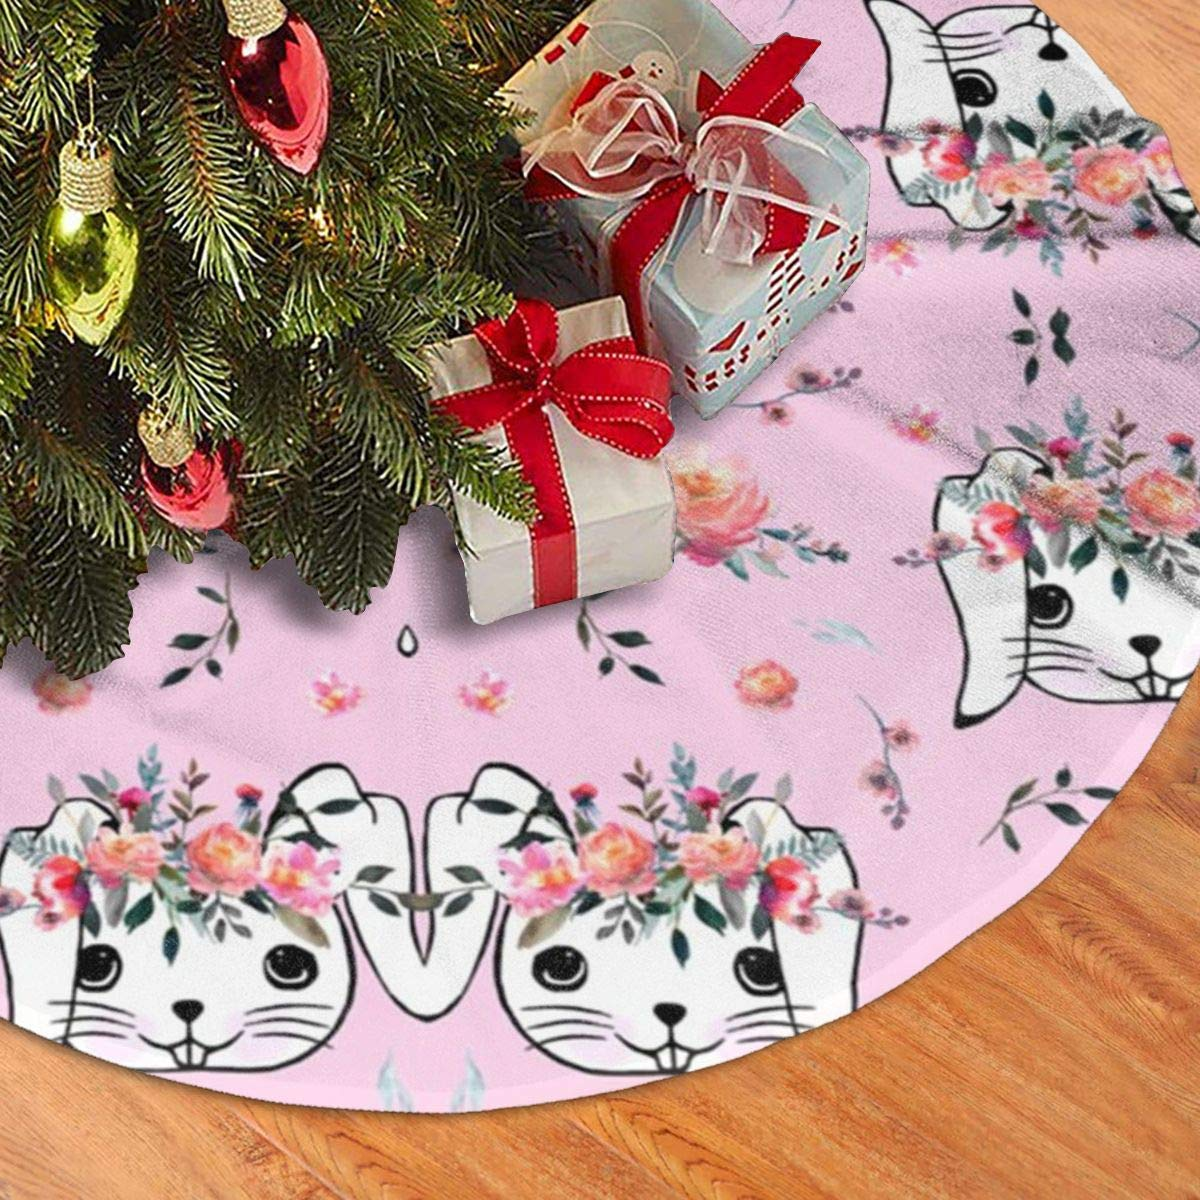 New Year Festive Party Decoration YUERF Easter Bunny 30 Christmas Tree Skirt